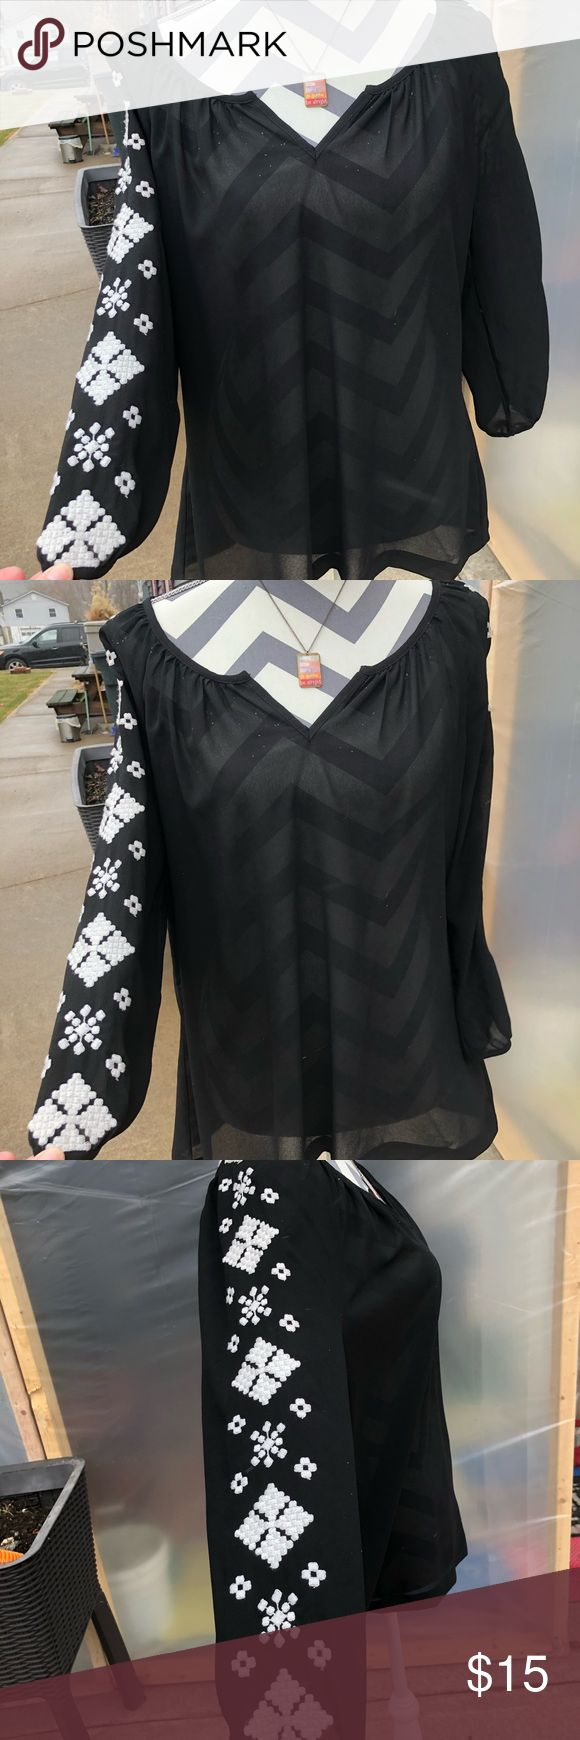 Old Navy Black Sheer Blouse - Large Old Navy :: Large Black sheer blouse with white embroidery design down both sleeves...GORGEOUS blouse! You want to own this pretty!  Just dry cleaned. Like new condition Old Navy Tops Blouses